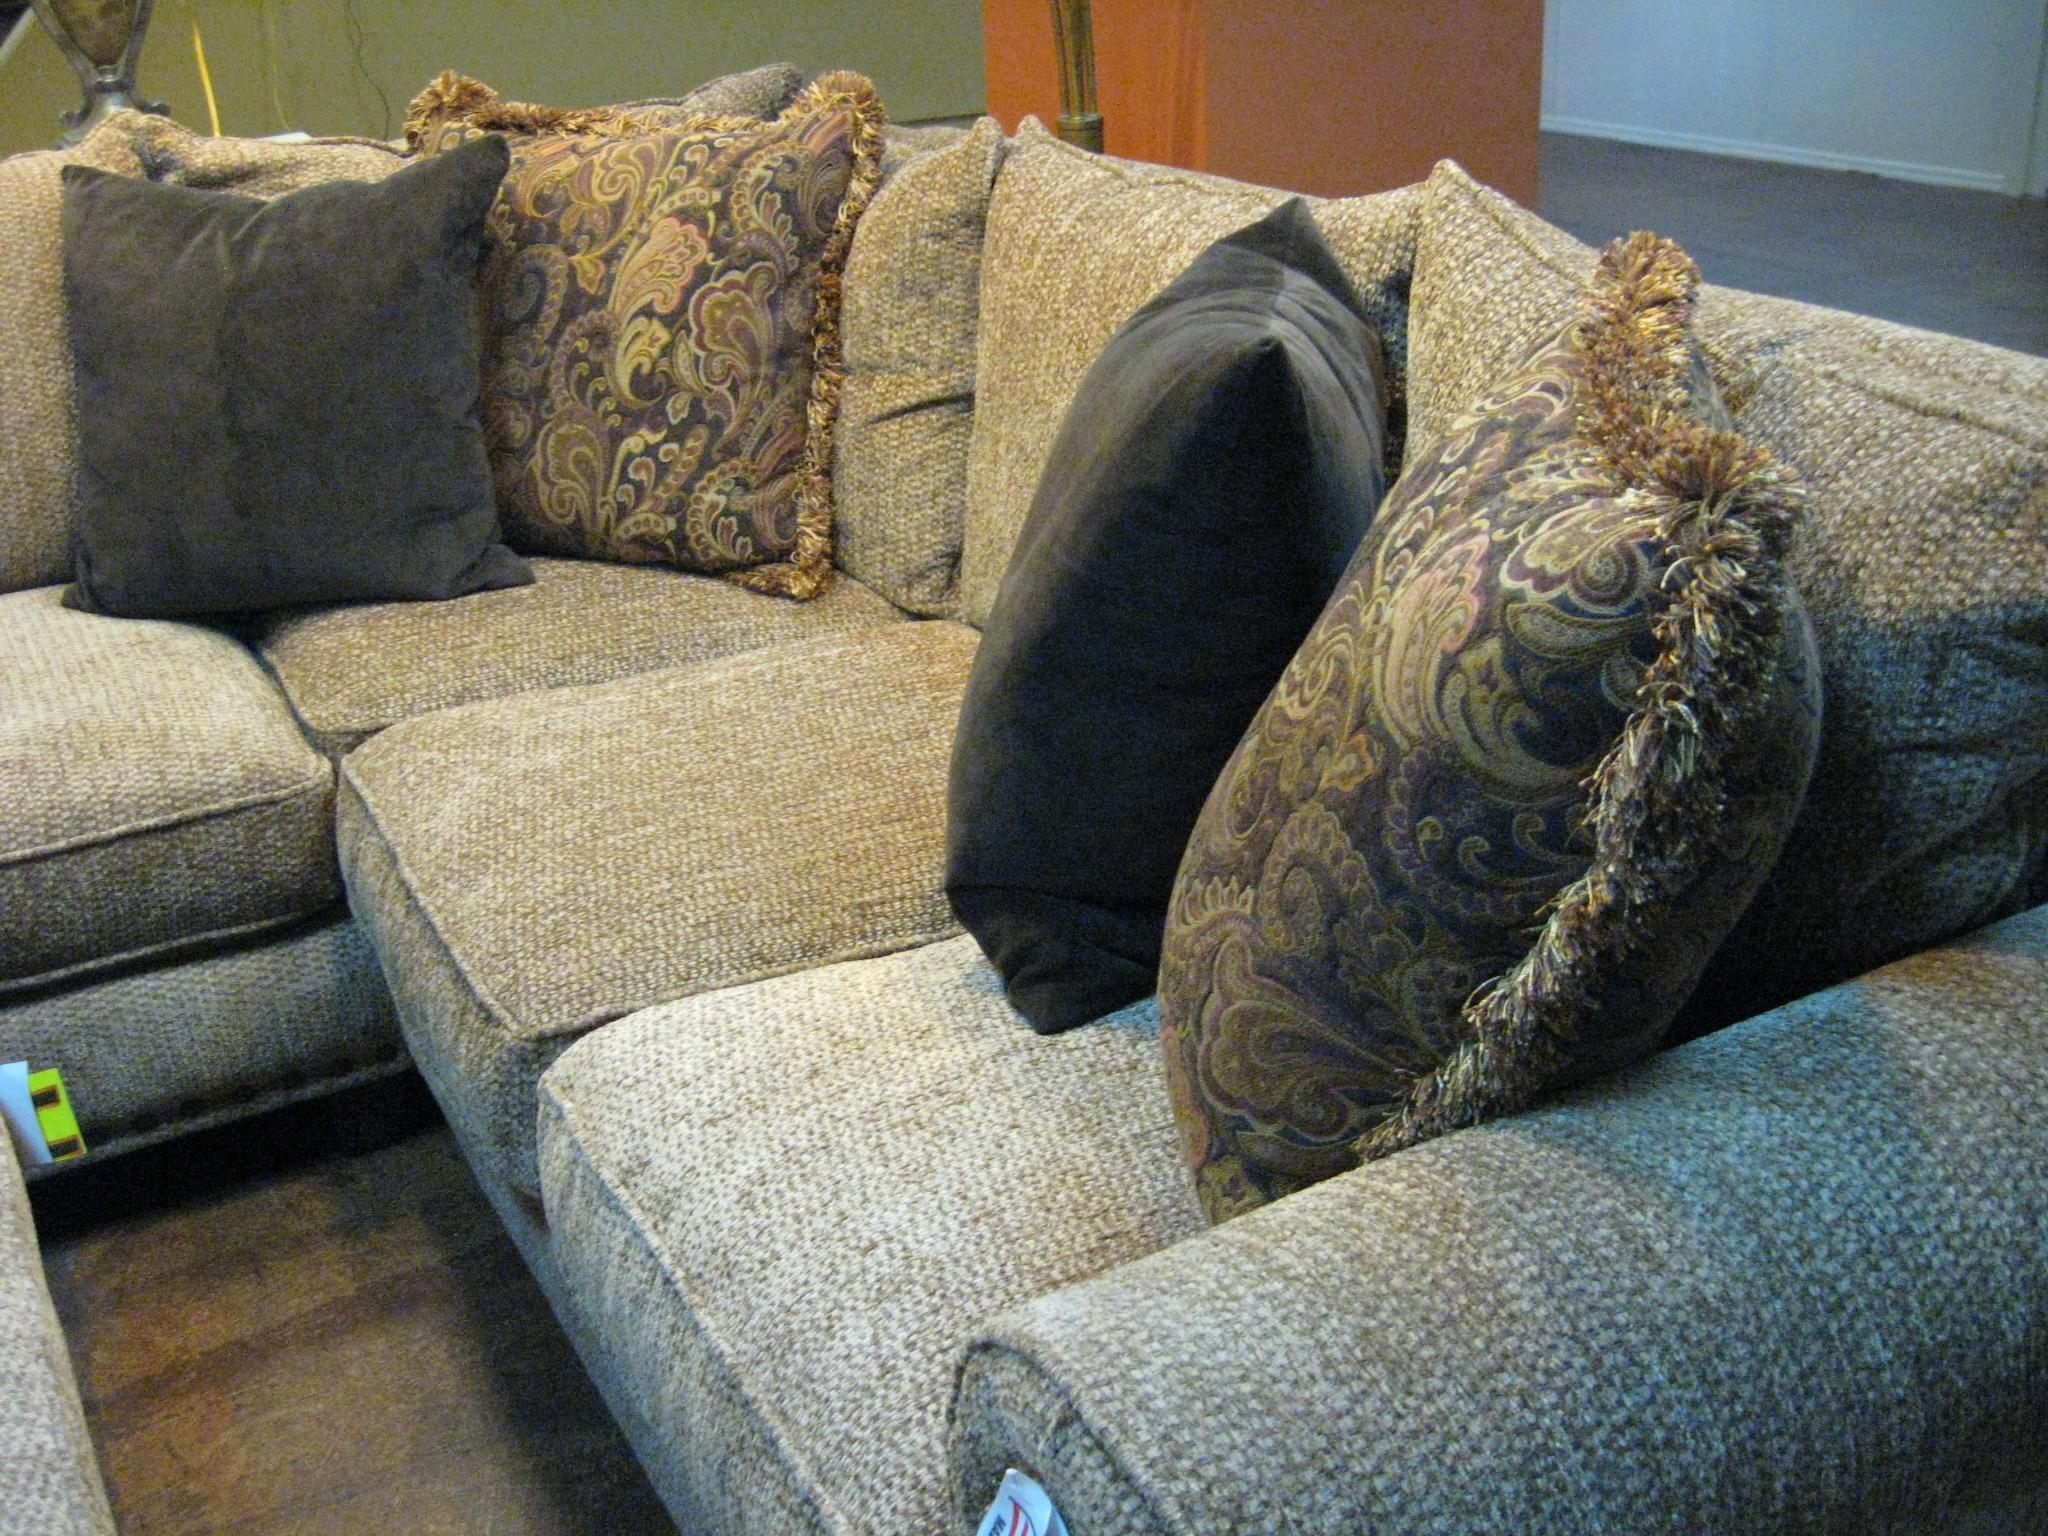 Robert Michaels Furniture Austin Texas With Regard To Austin Sectional Sofa (Photo 11 of 15 : austin sectional - Sectionals, Sofas & Couches